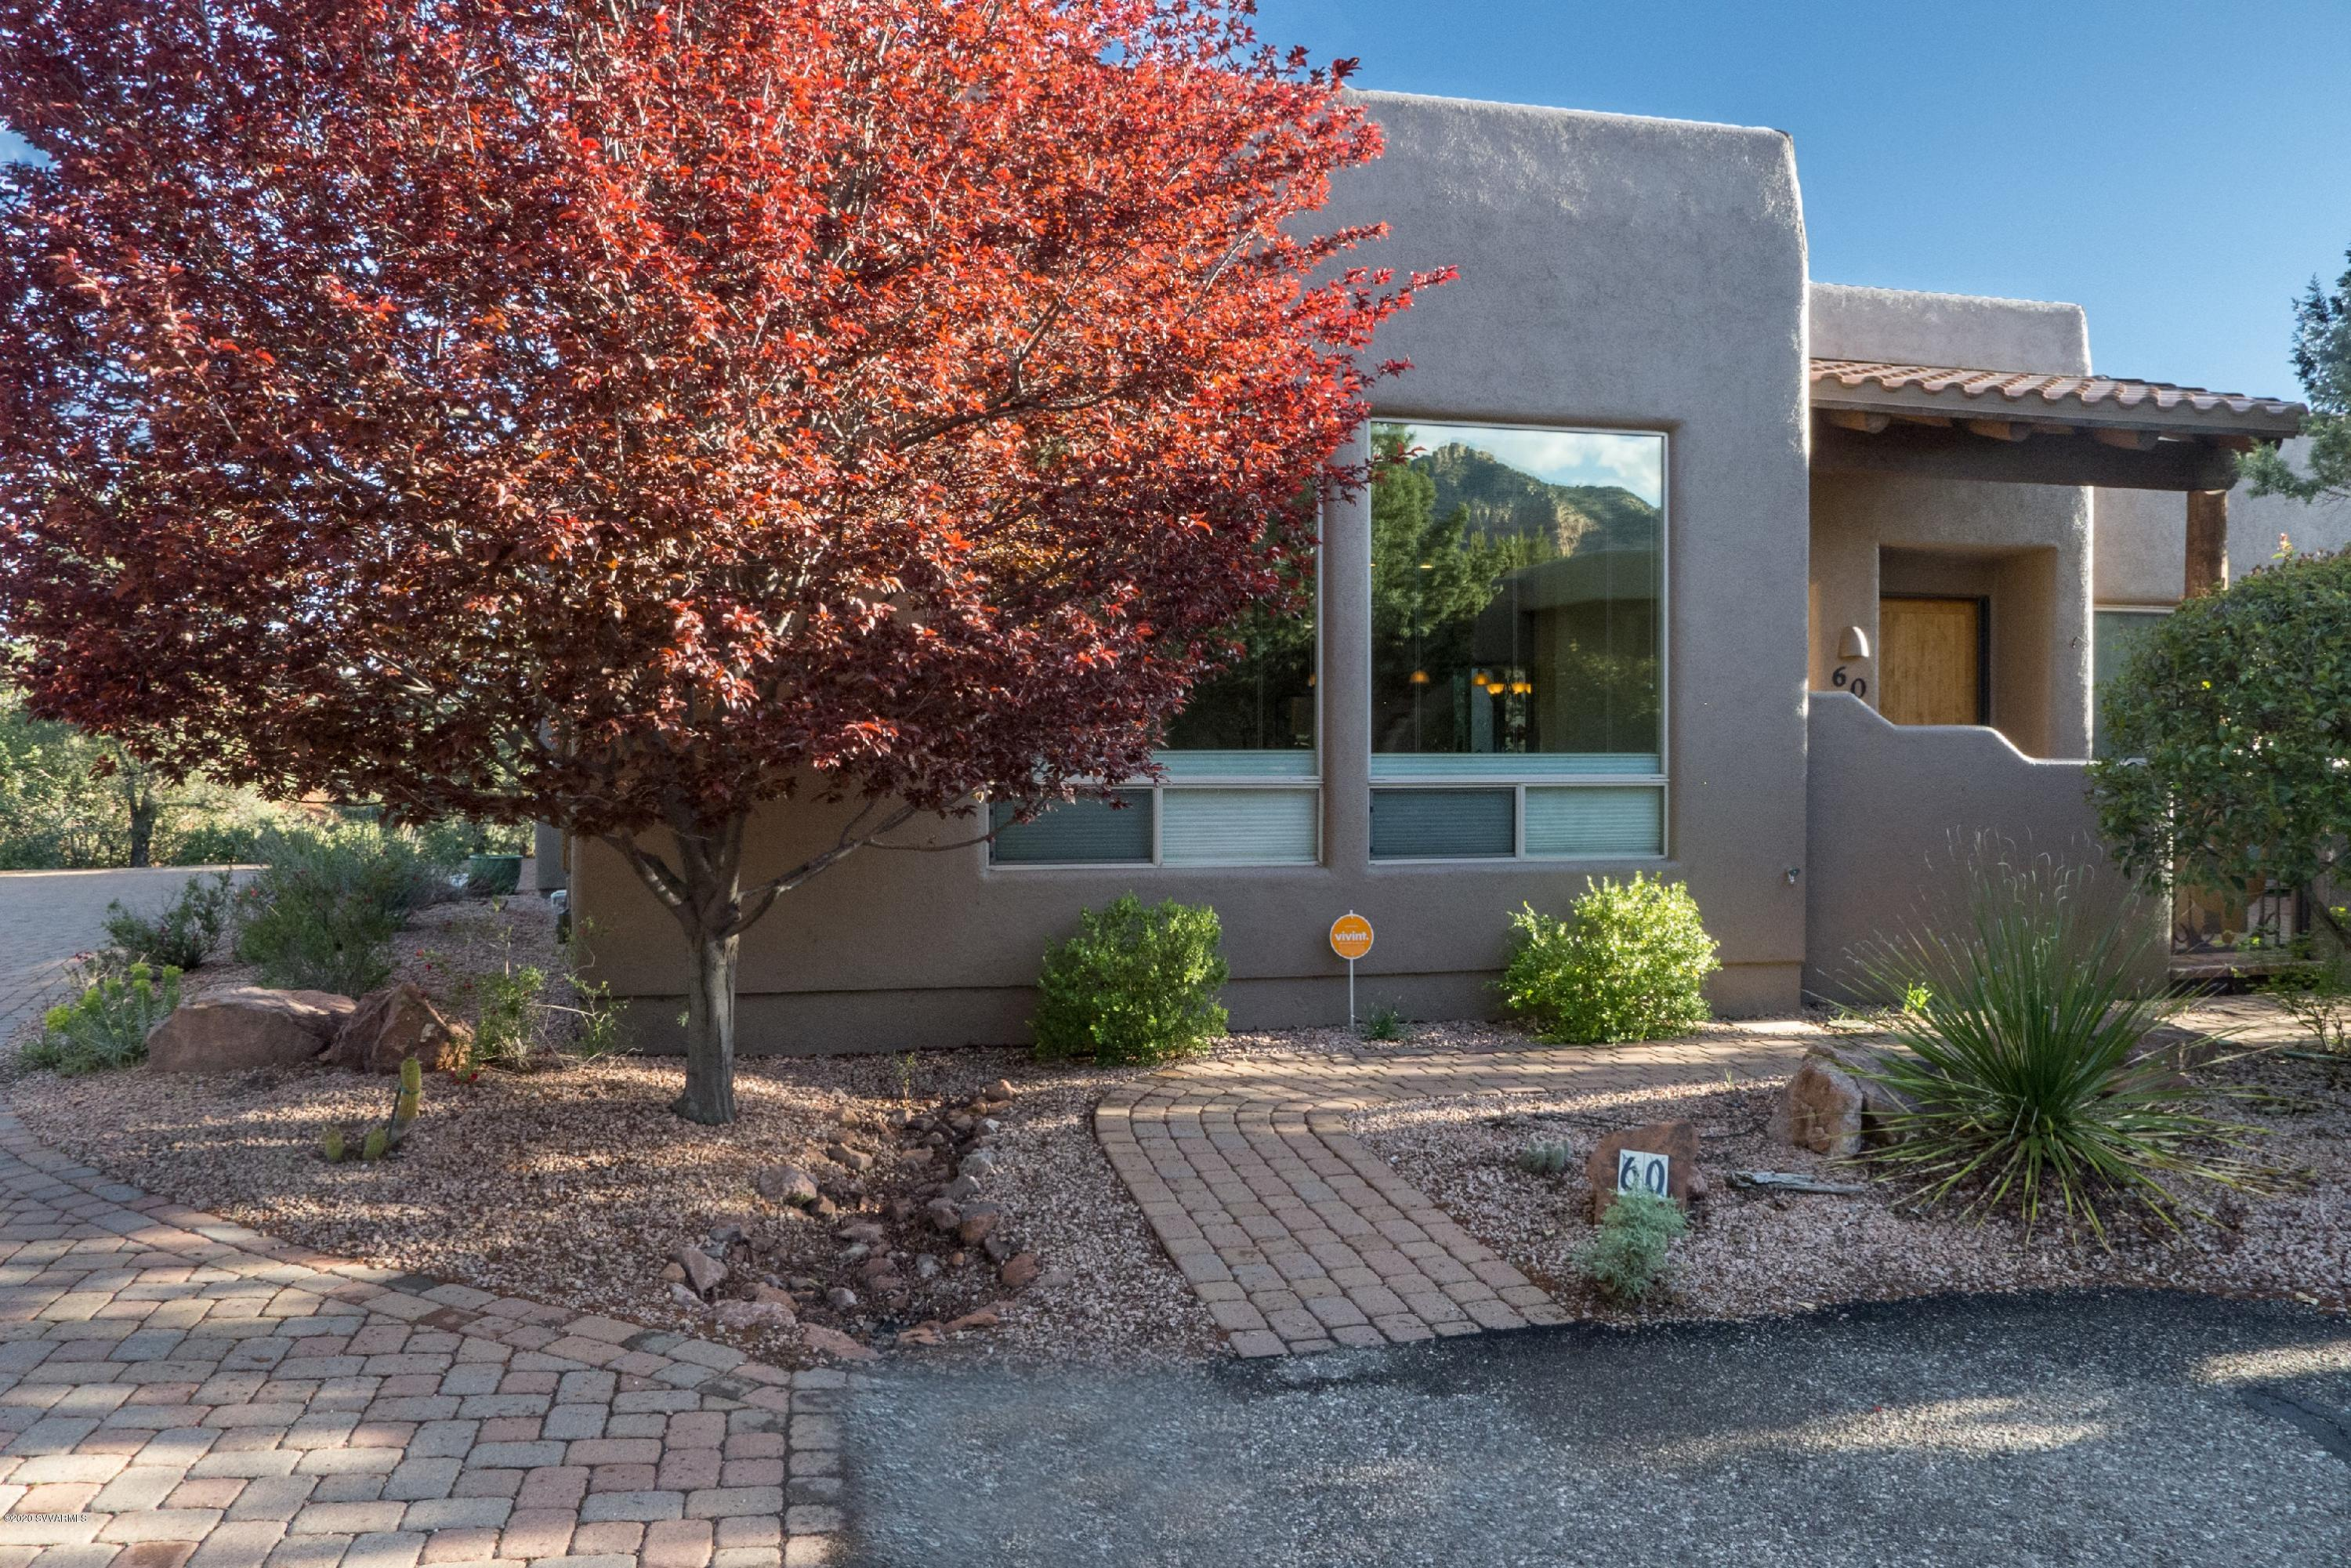 60 Whitetail Lane Sedona, AZ 86336